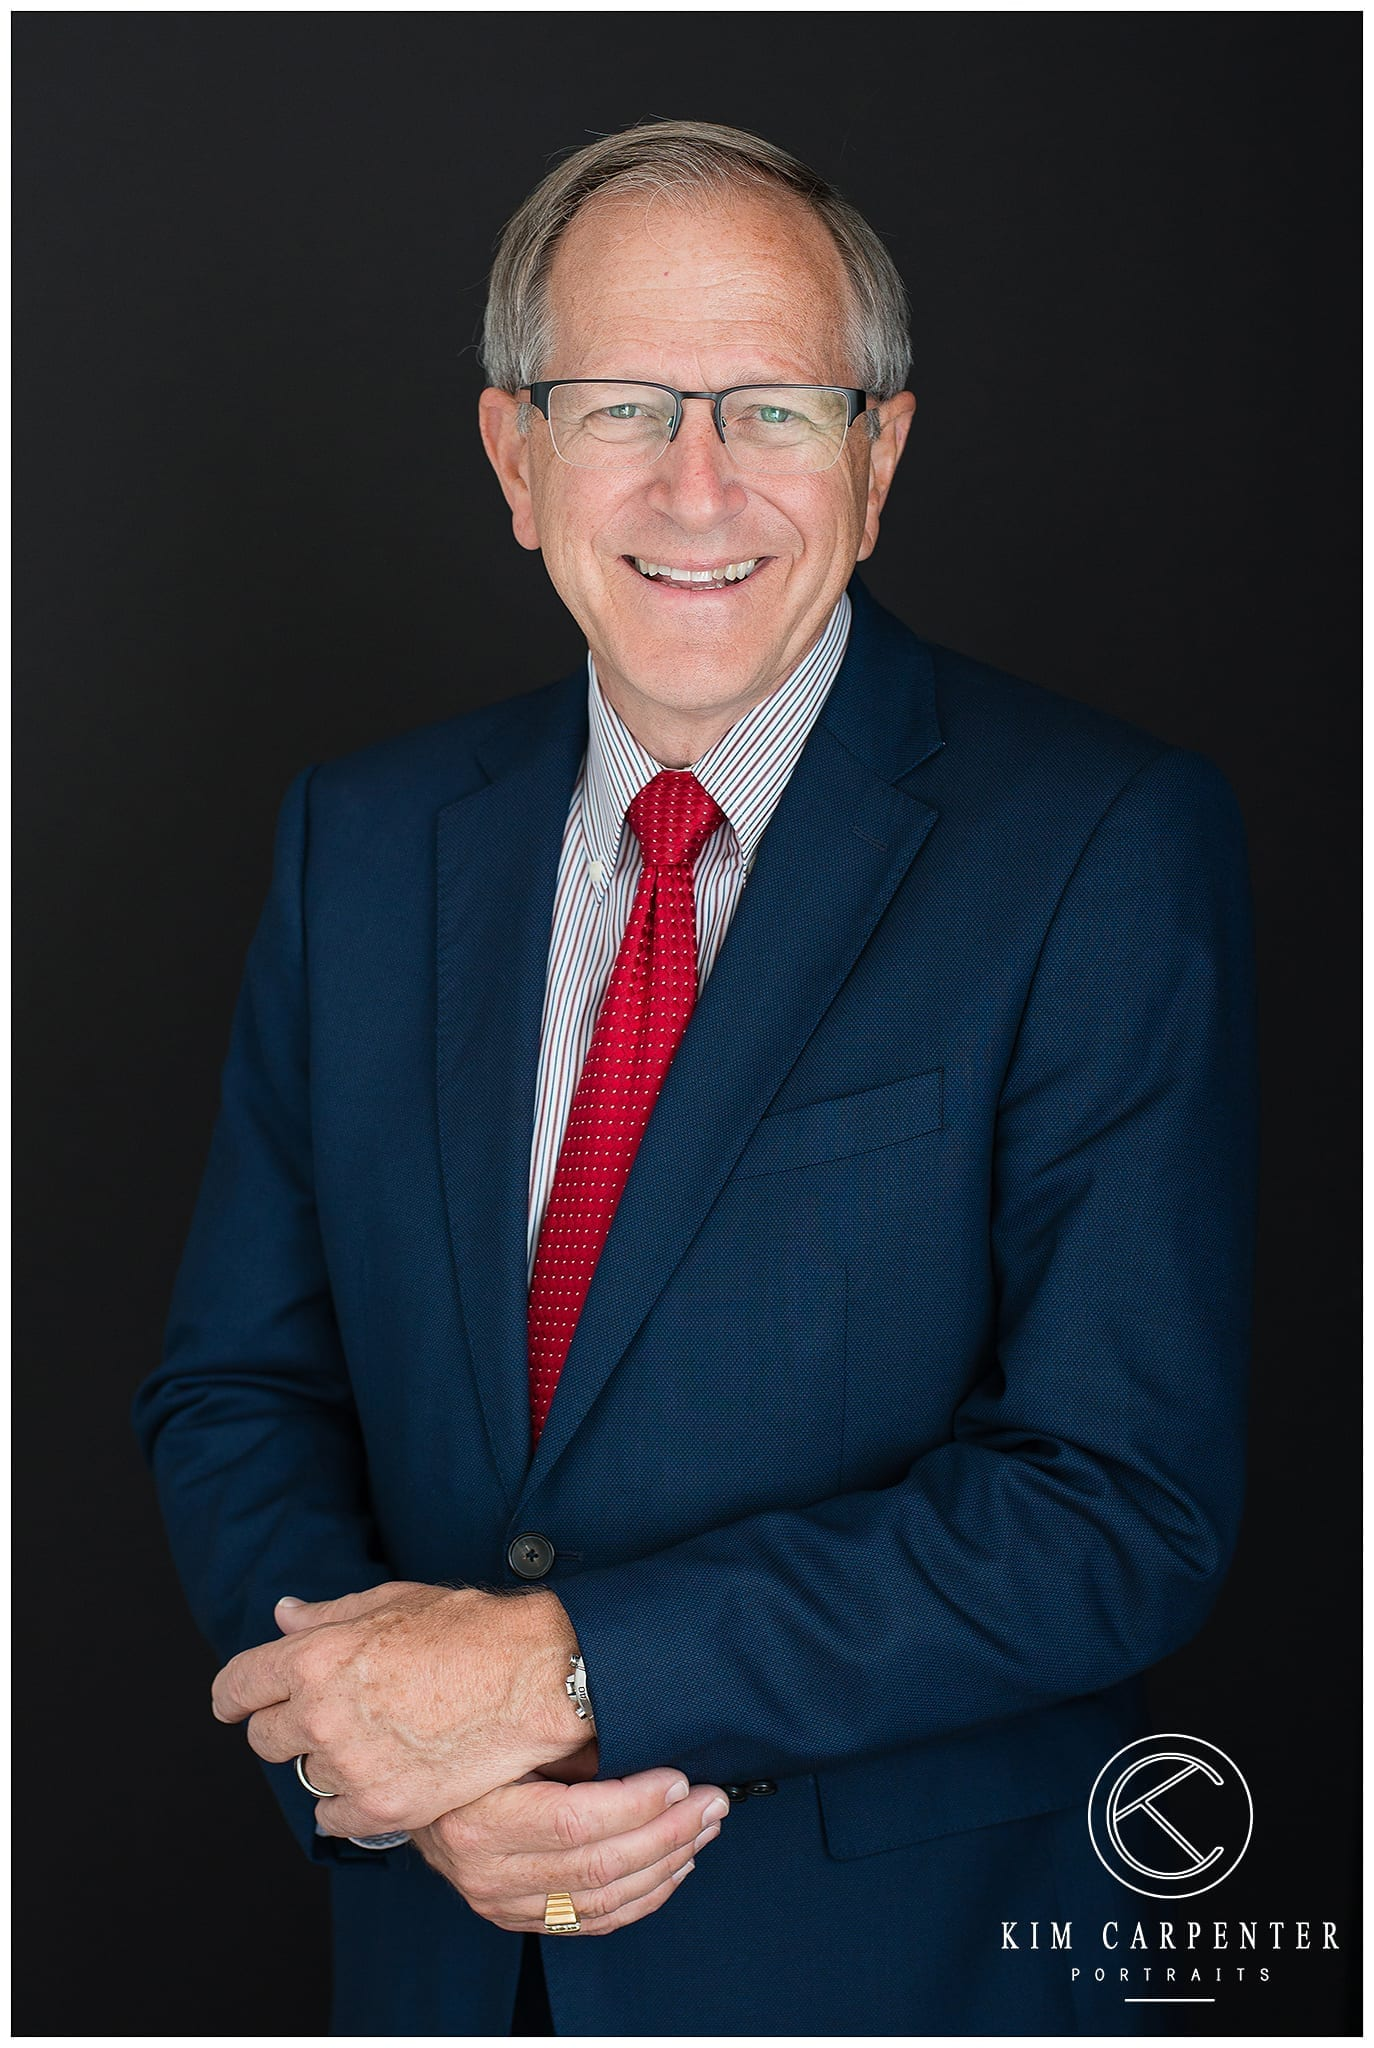 Bill Mutz is wearing a red tie and smiling for his professional headshots. Lakeland Photographer, professional headshots